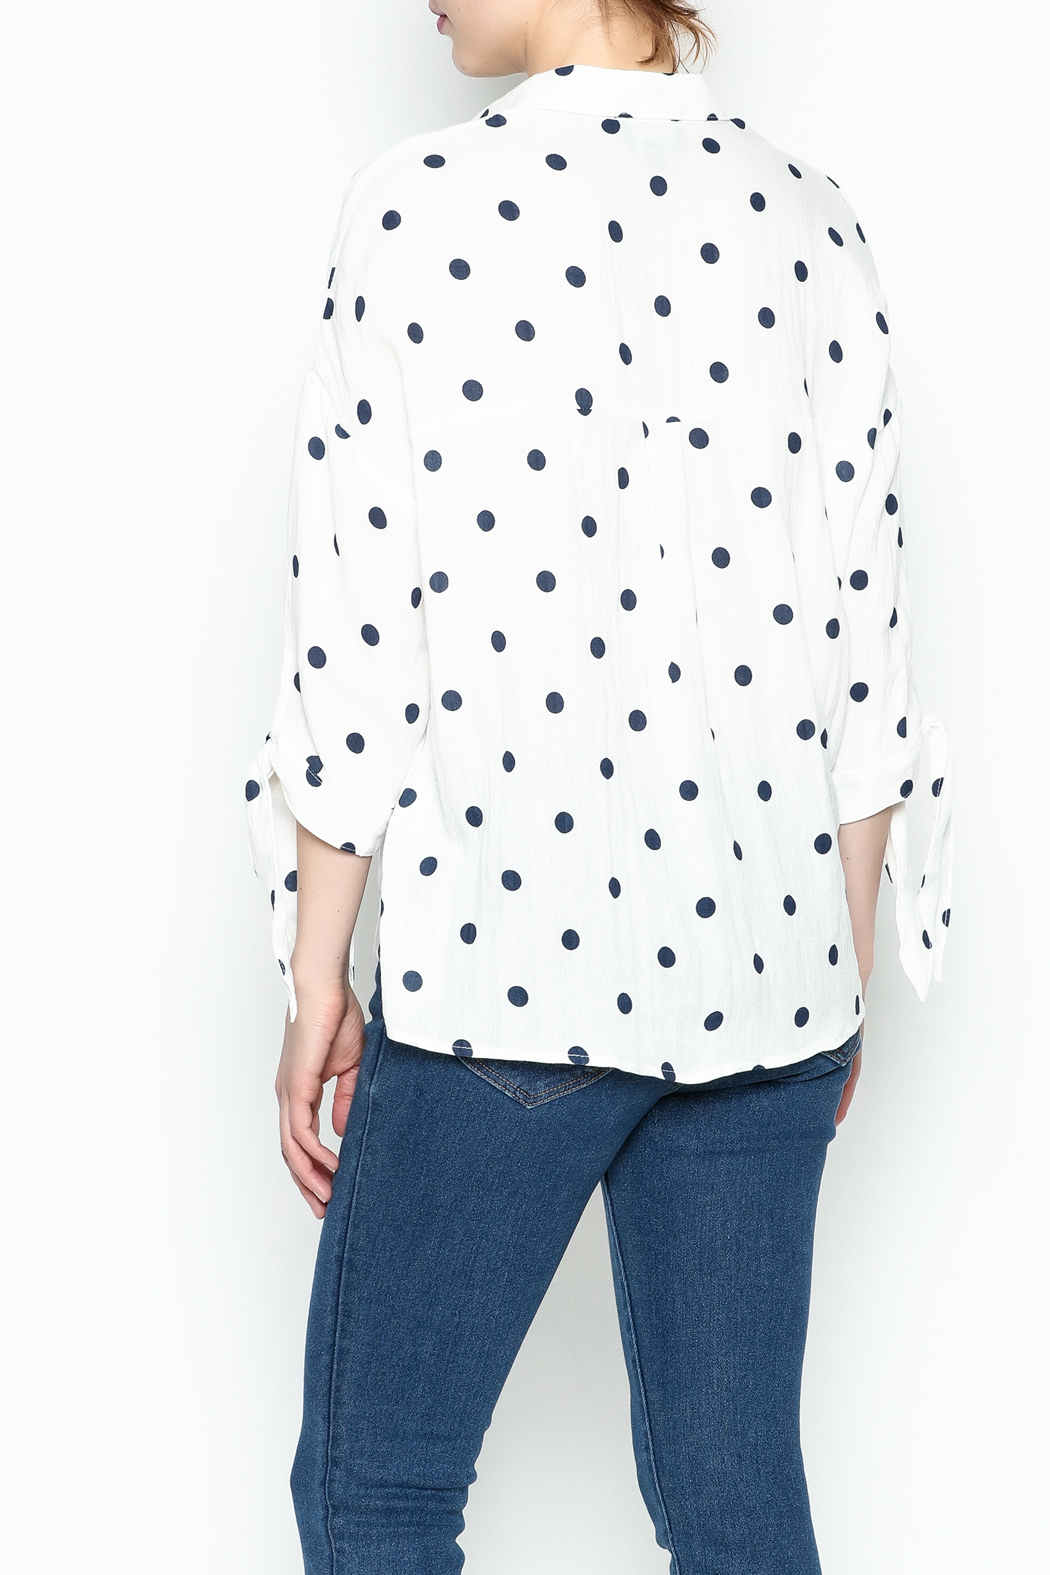 Lumiere Polka Dot Top - Back Cropped Image